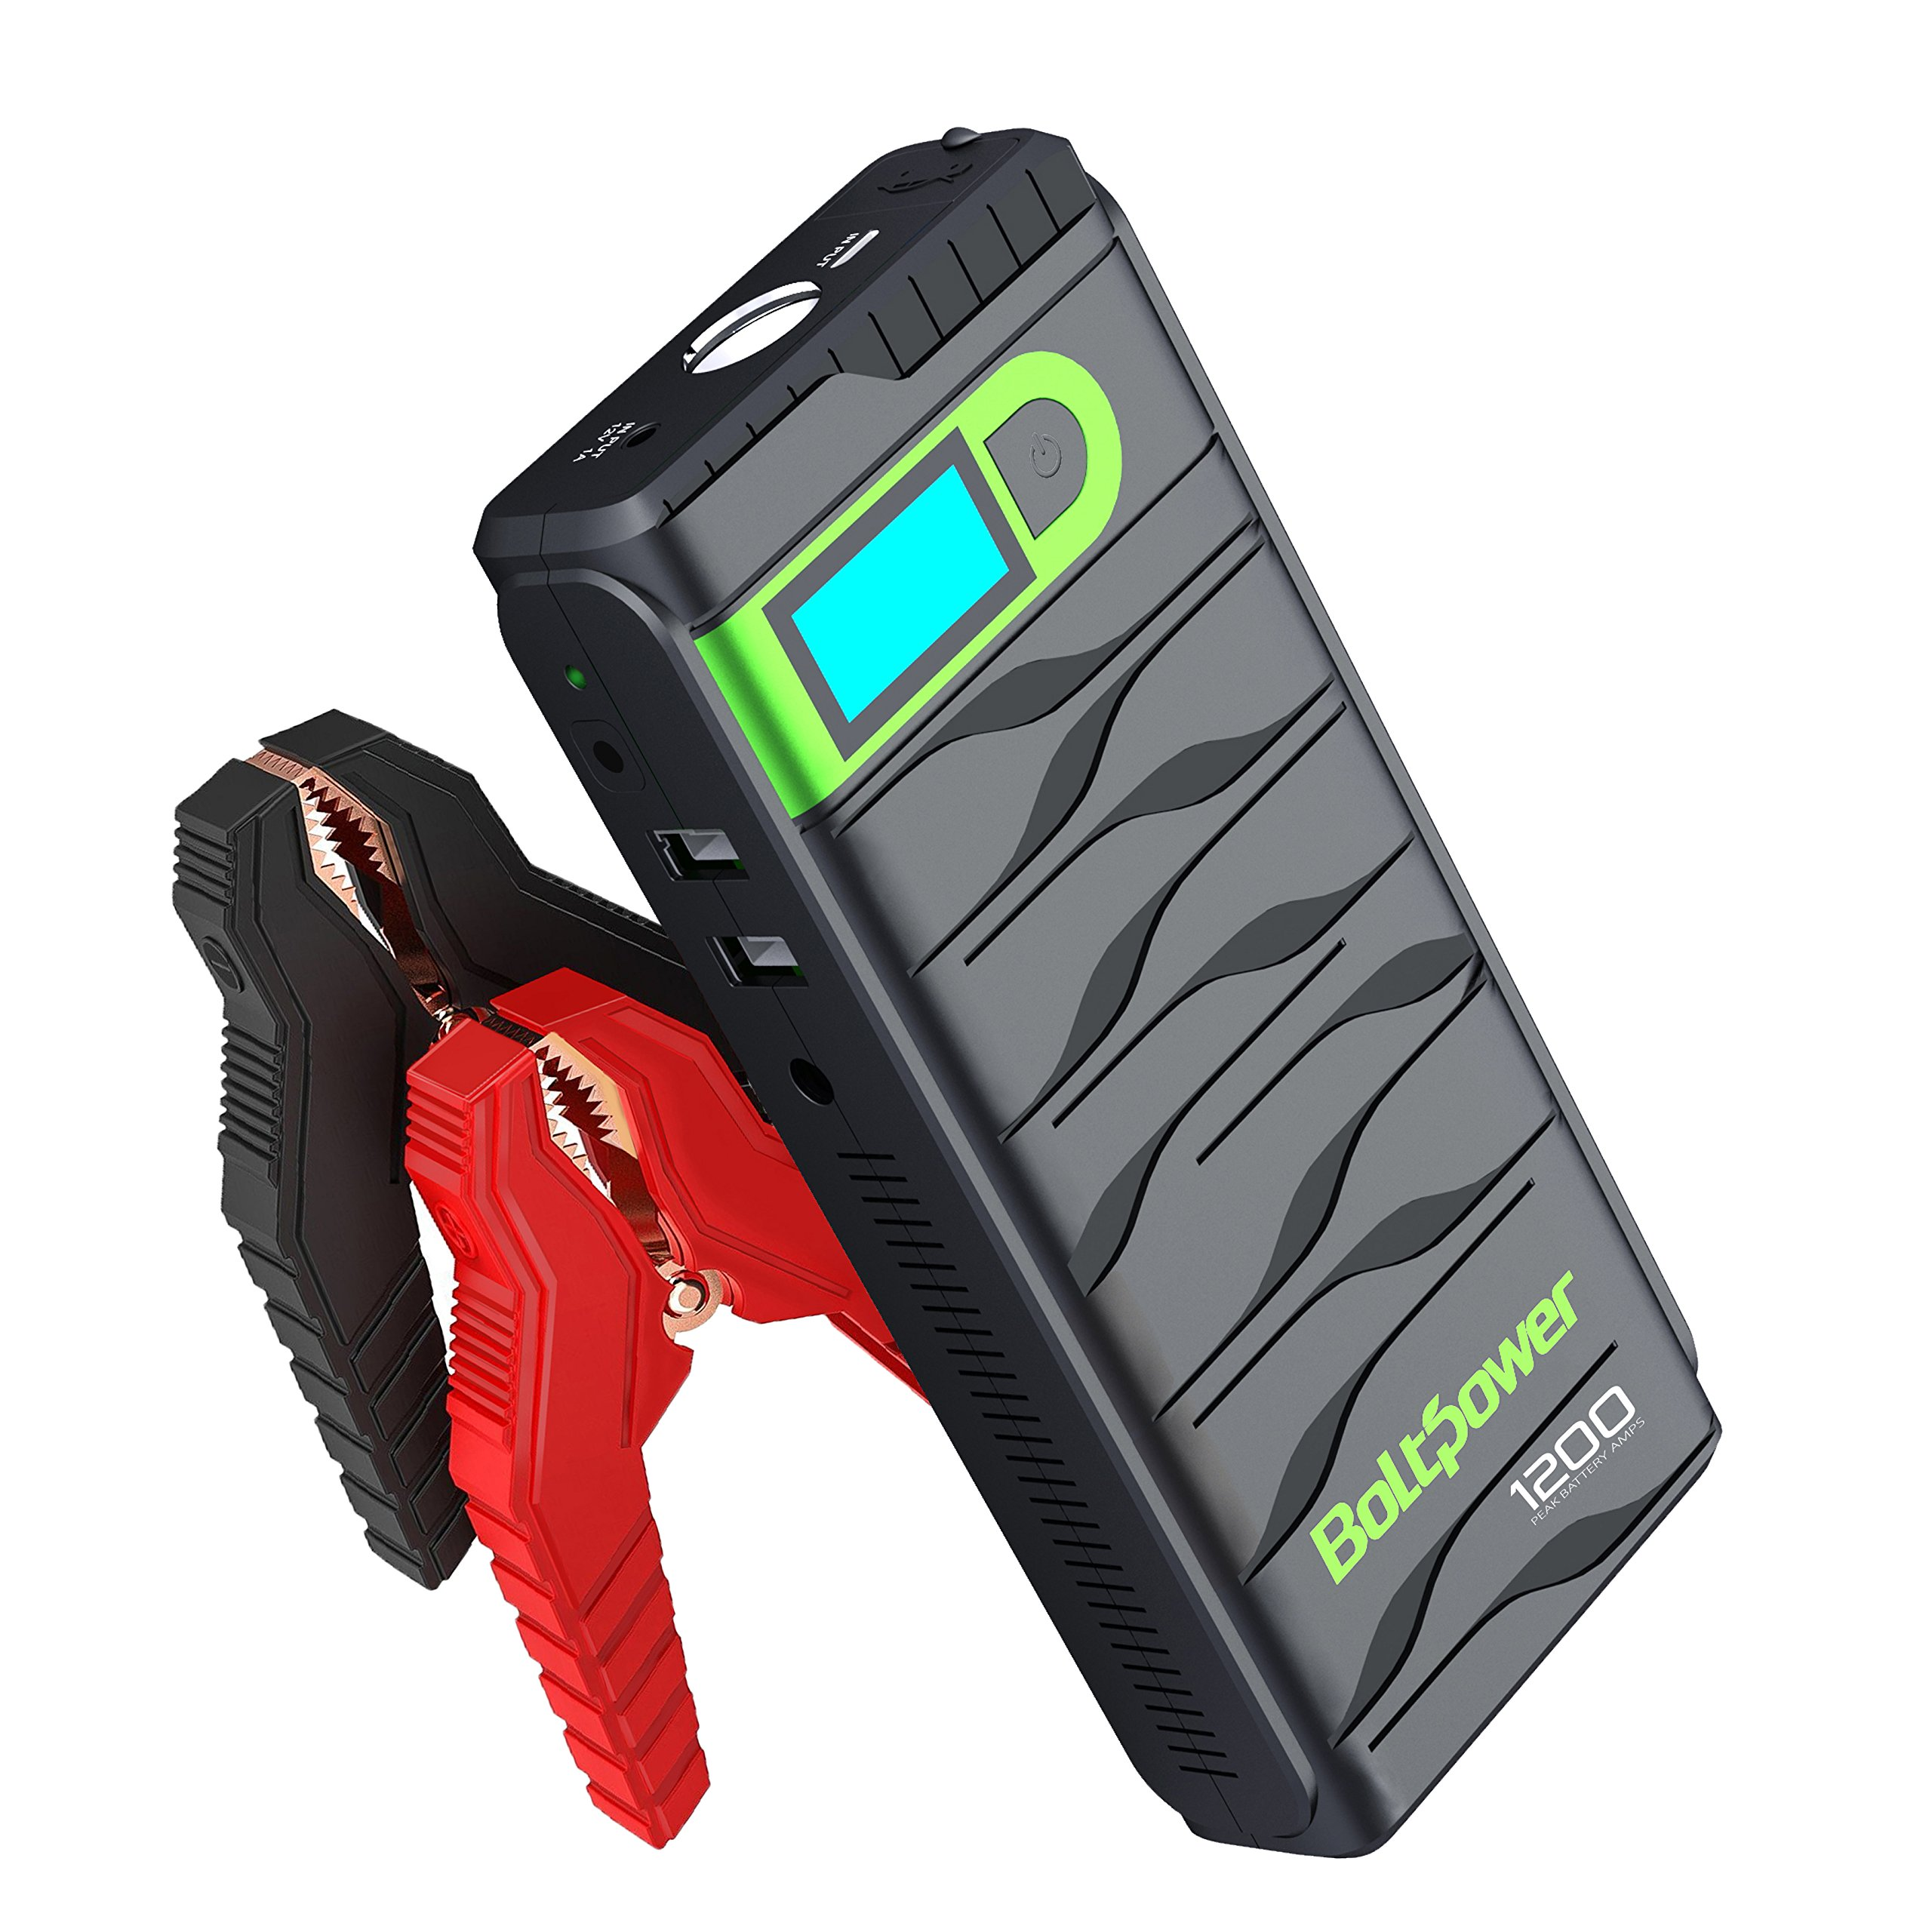 Bolt Power D28A 13600mAh Portable Car Jump Starter 400 AMP Peak With Air Compressor